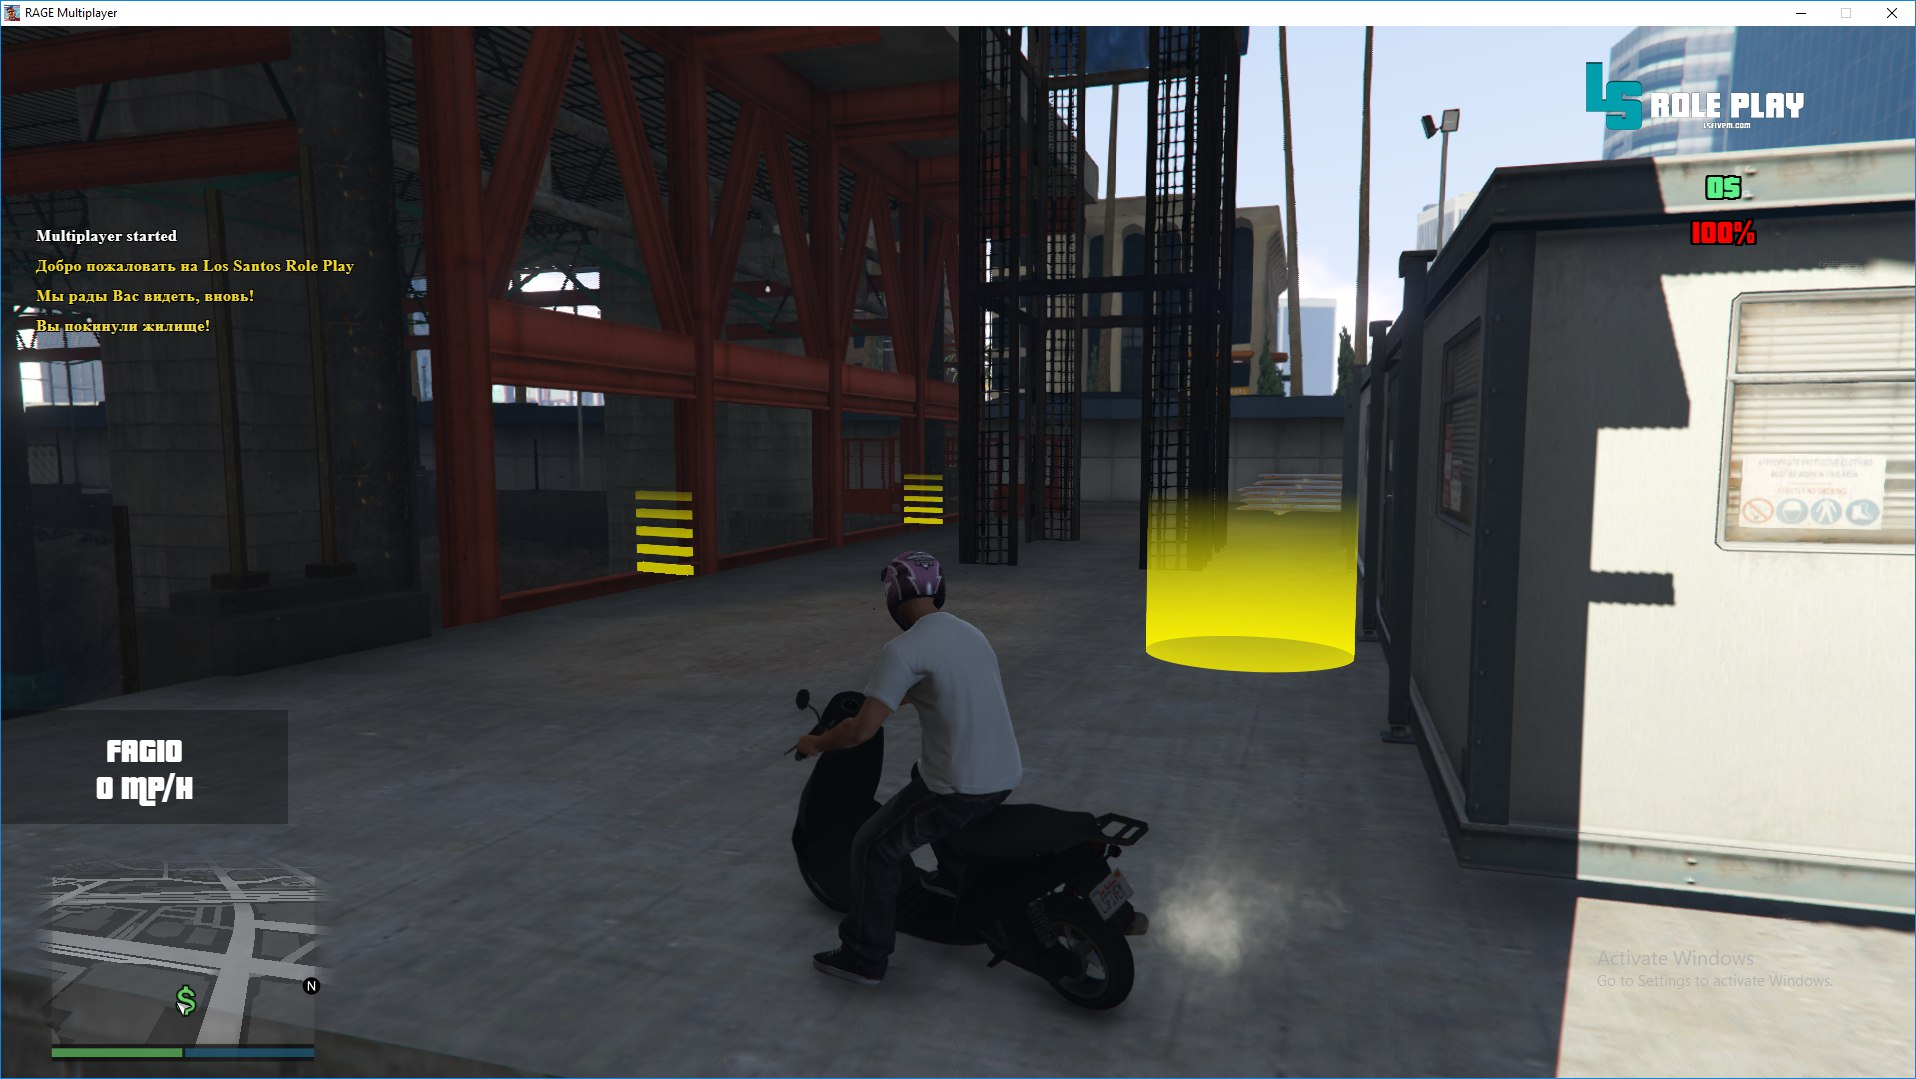 los santos role play forum